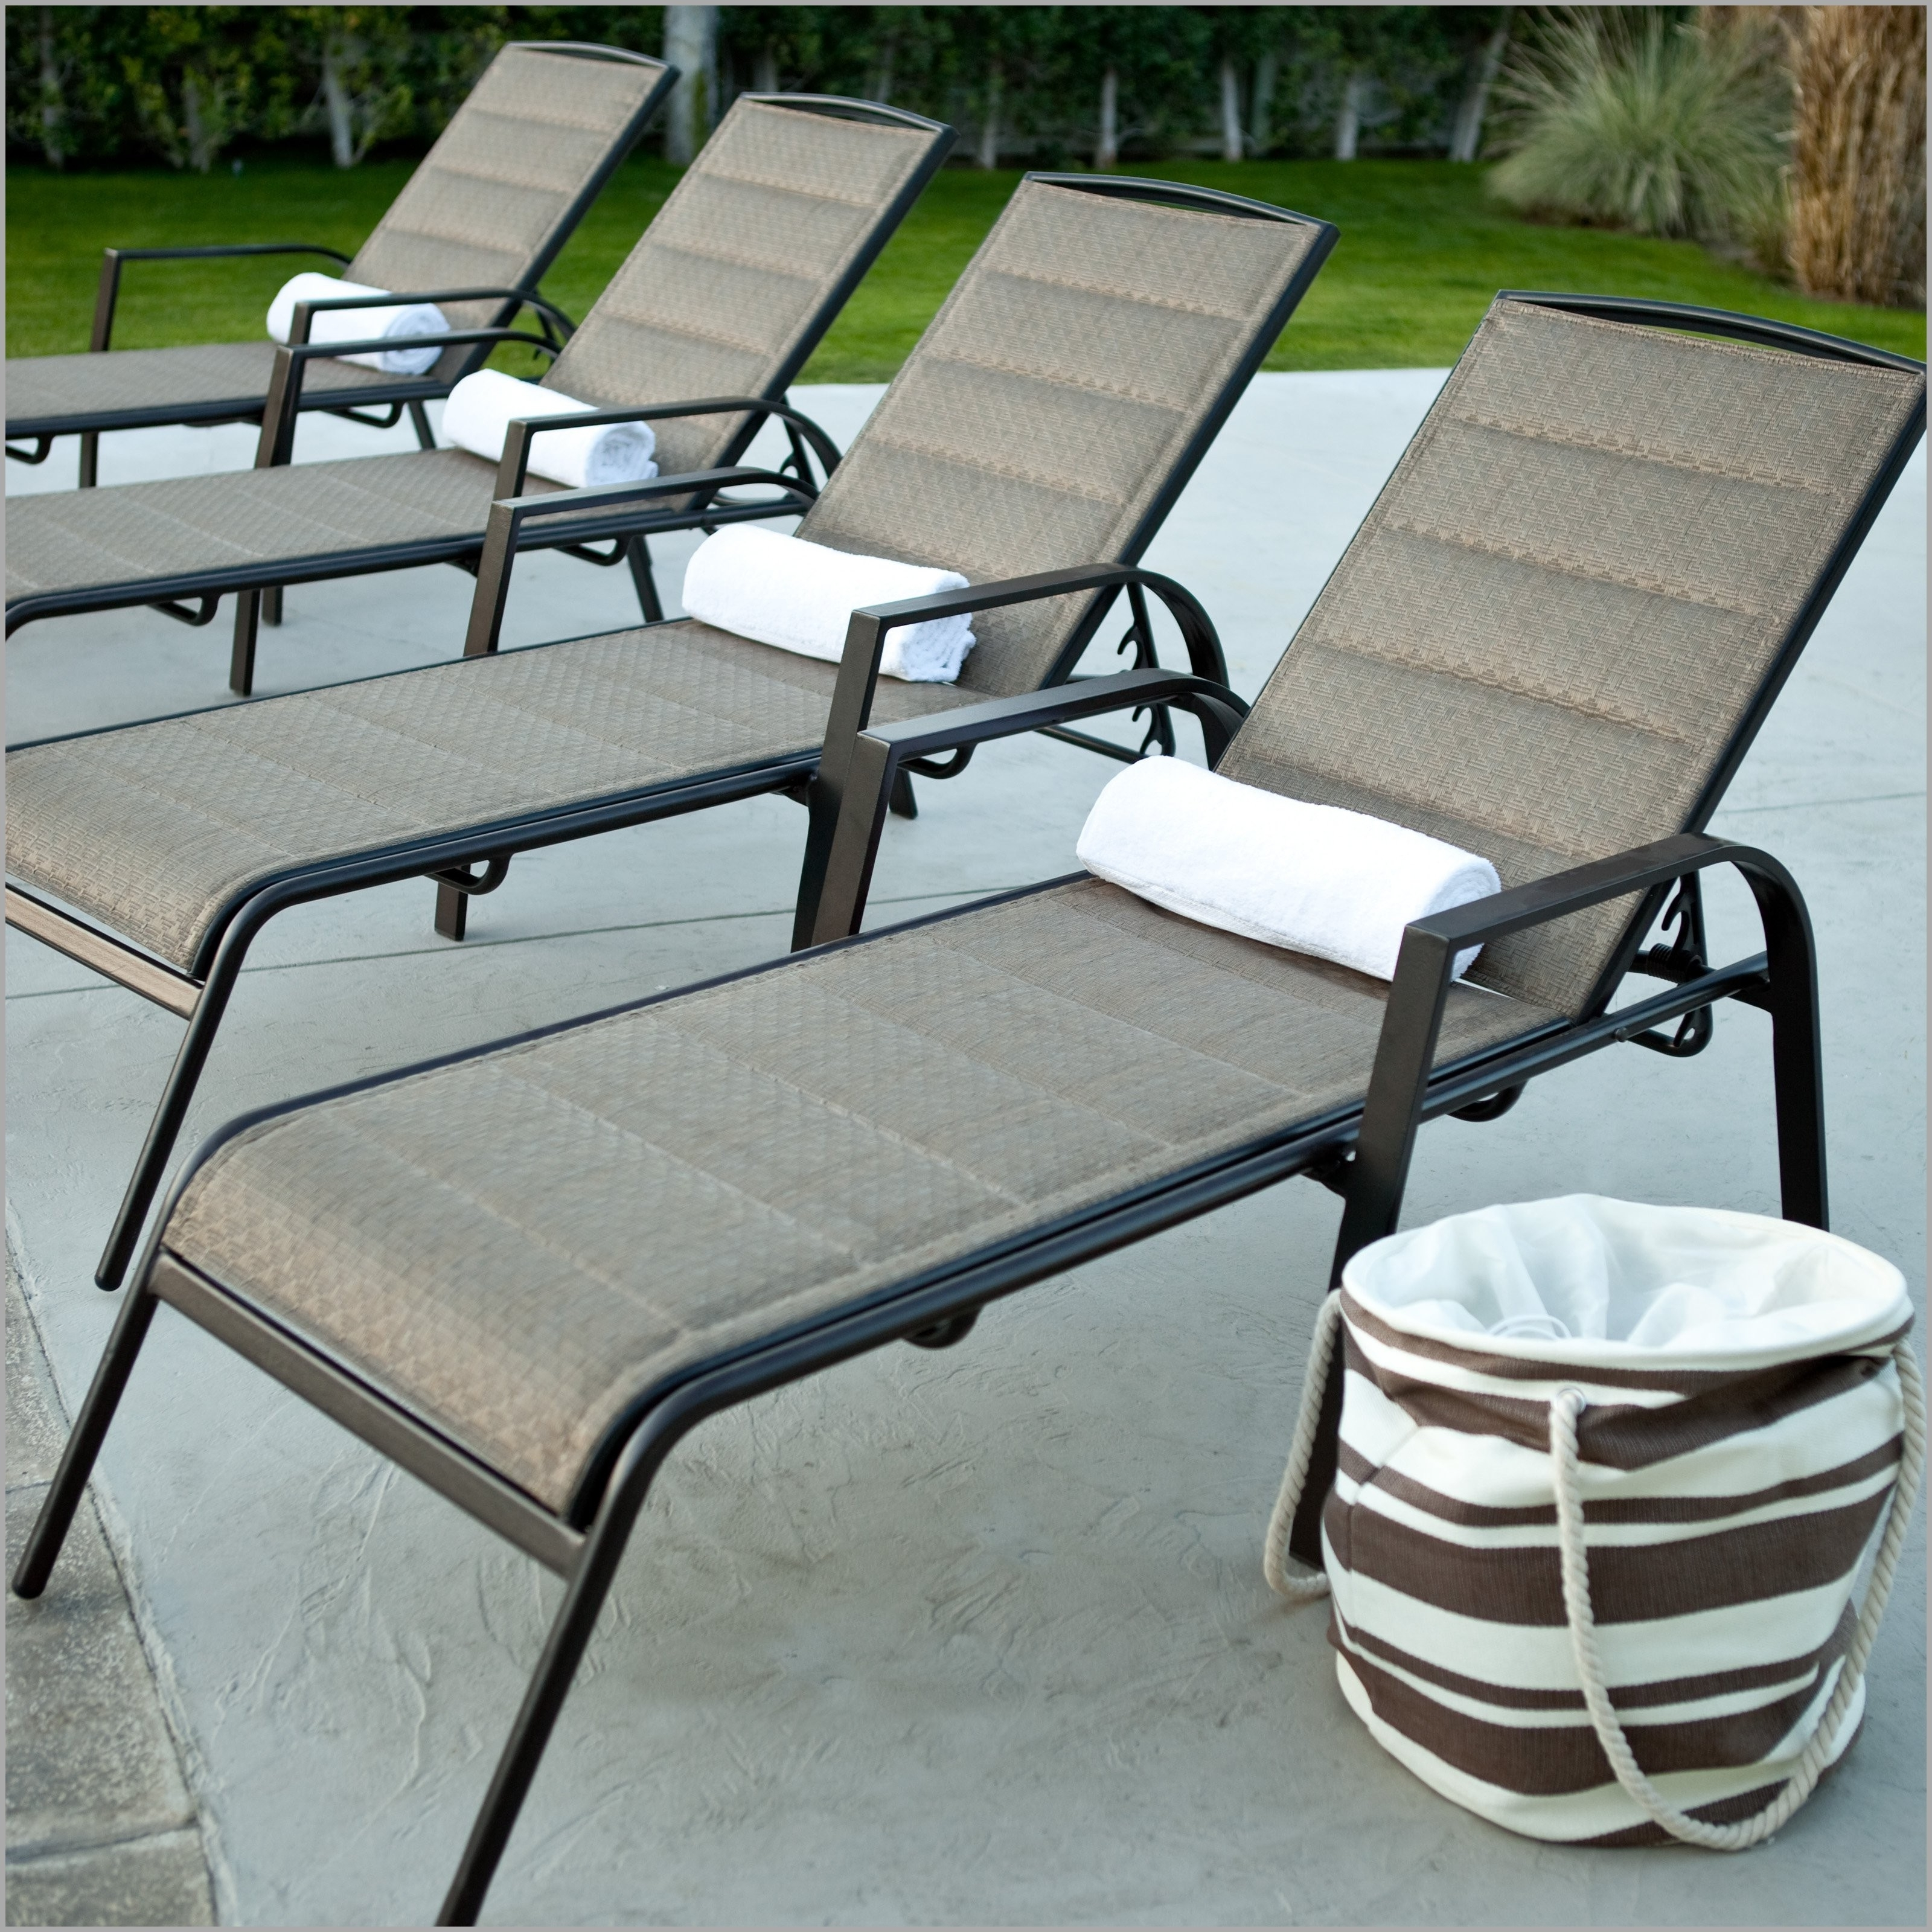 Most Recently Released Extraordinary Pool Chaise Lounge Chairs Decorative 600357 – Chair Pertaining To Pool Chaise Lounges (View 9 of 15)